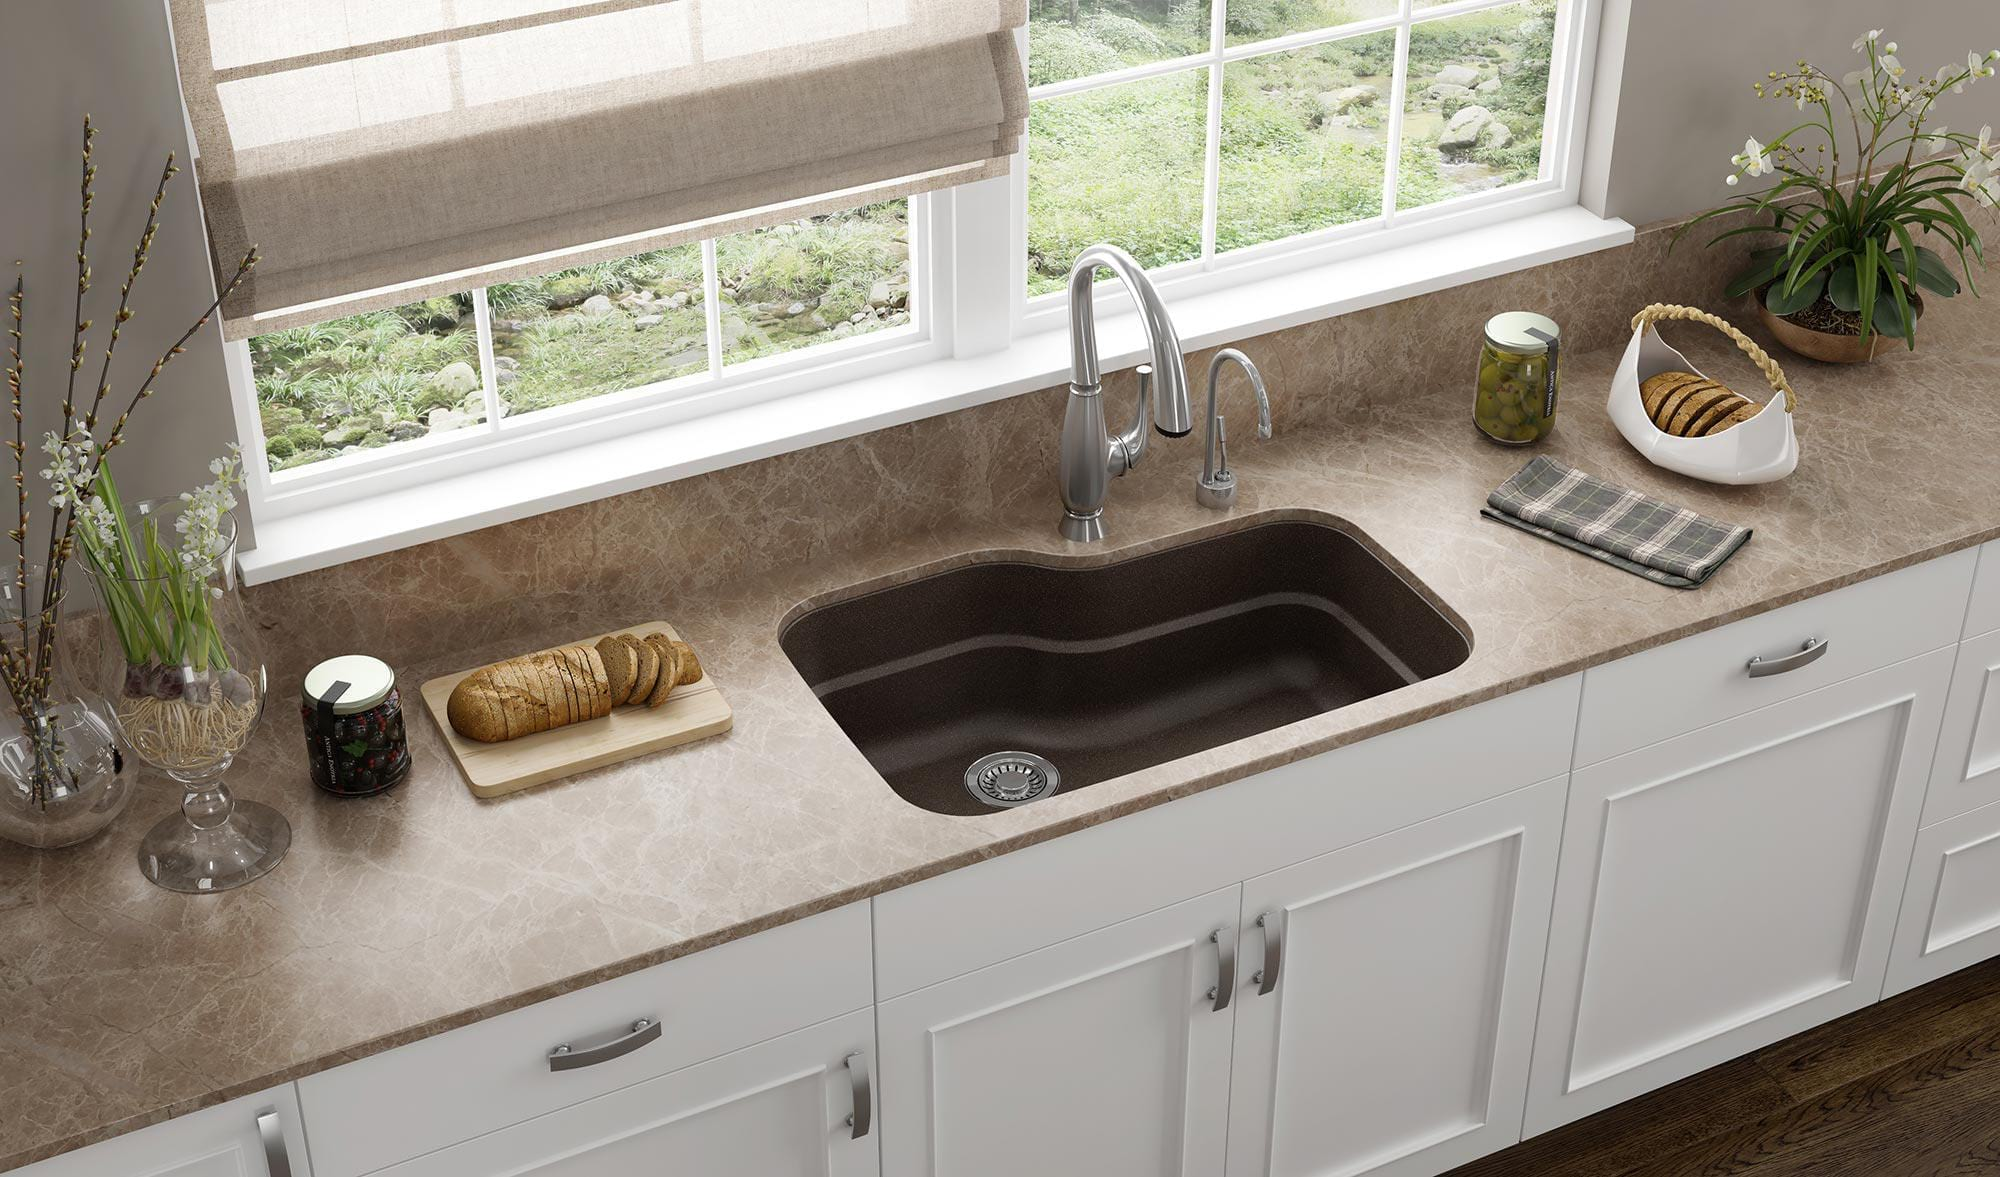 Best Undermount Kitchen Sinks for Granite Countertops With Buying ...